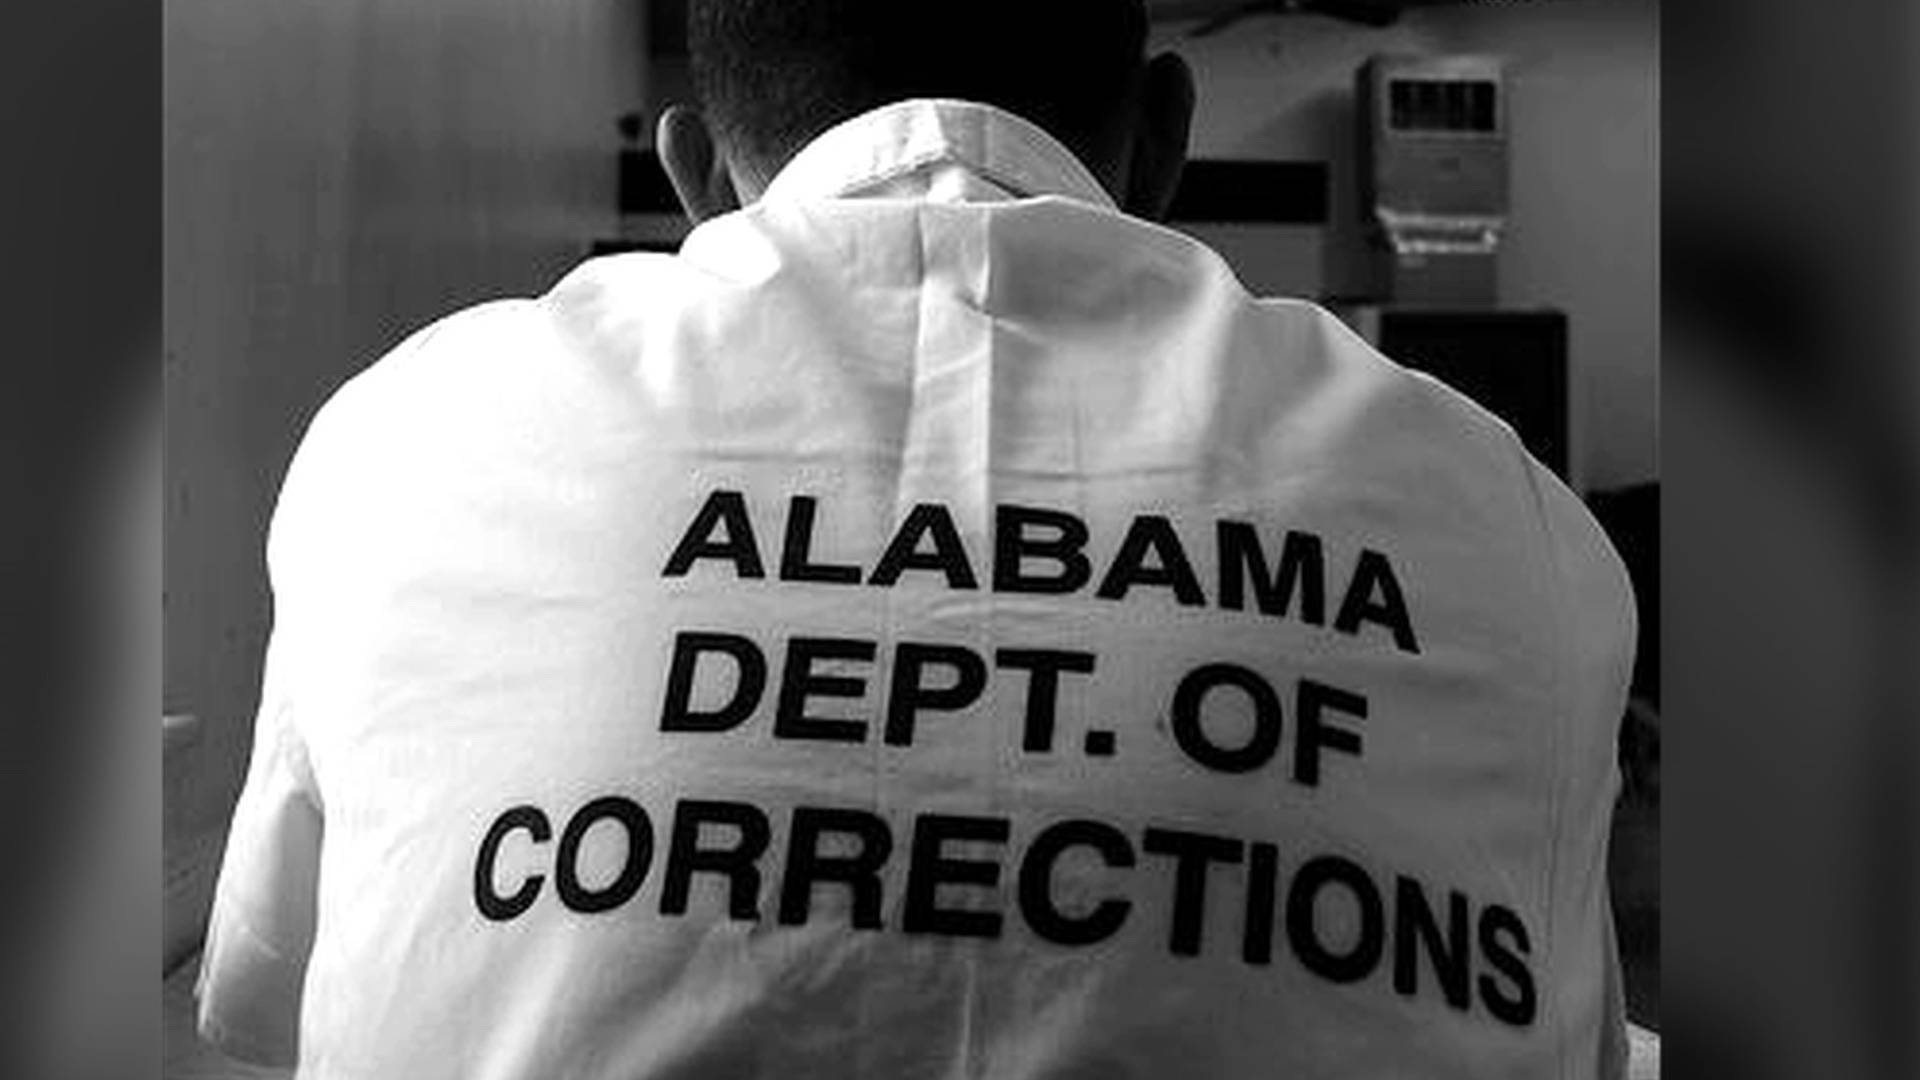 Alabama Prison Strike Organizer Speaks From Behind Bars. List Insurance Companies Cheap Nursing School. Bariatric Surgery Florida Seattle Grad School. Harborstone Credit Union Credit Card. Company Registration Certificate. Bowness On Windermere Hotels. Treatments For Opiate Addiction. Free Conference Call Line Install Ssl Cpanel. Where Can I Order Personalized Pens